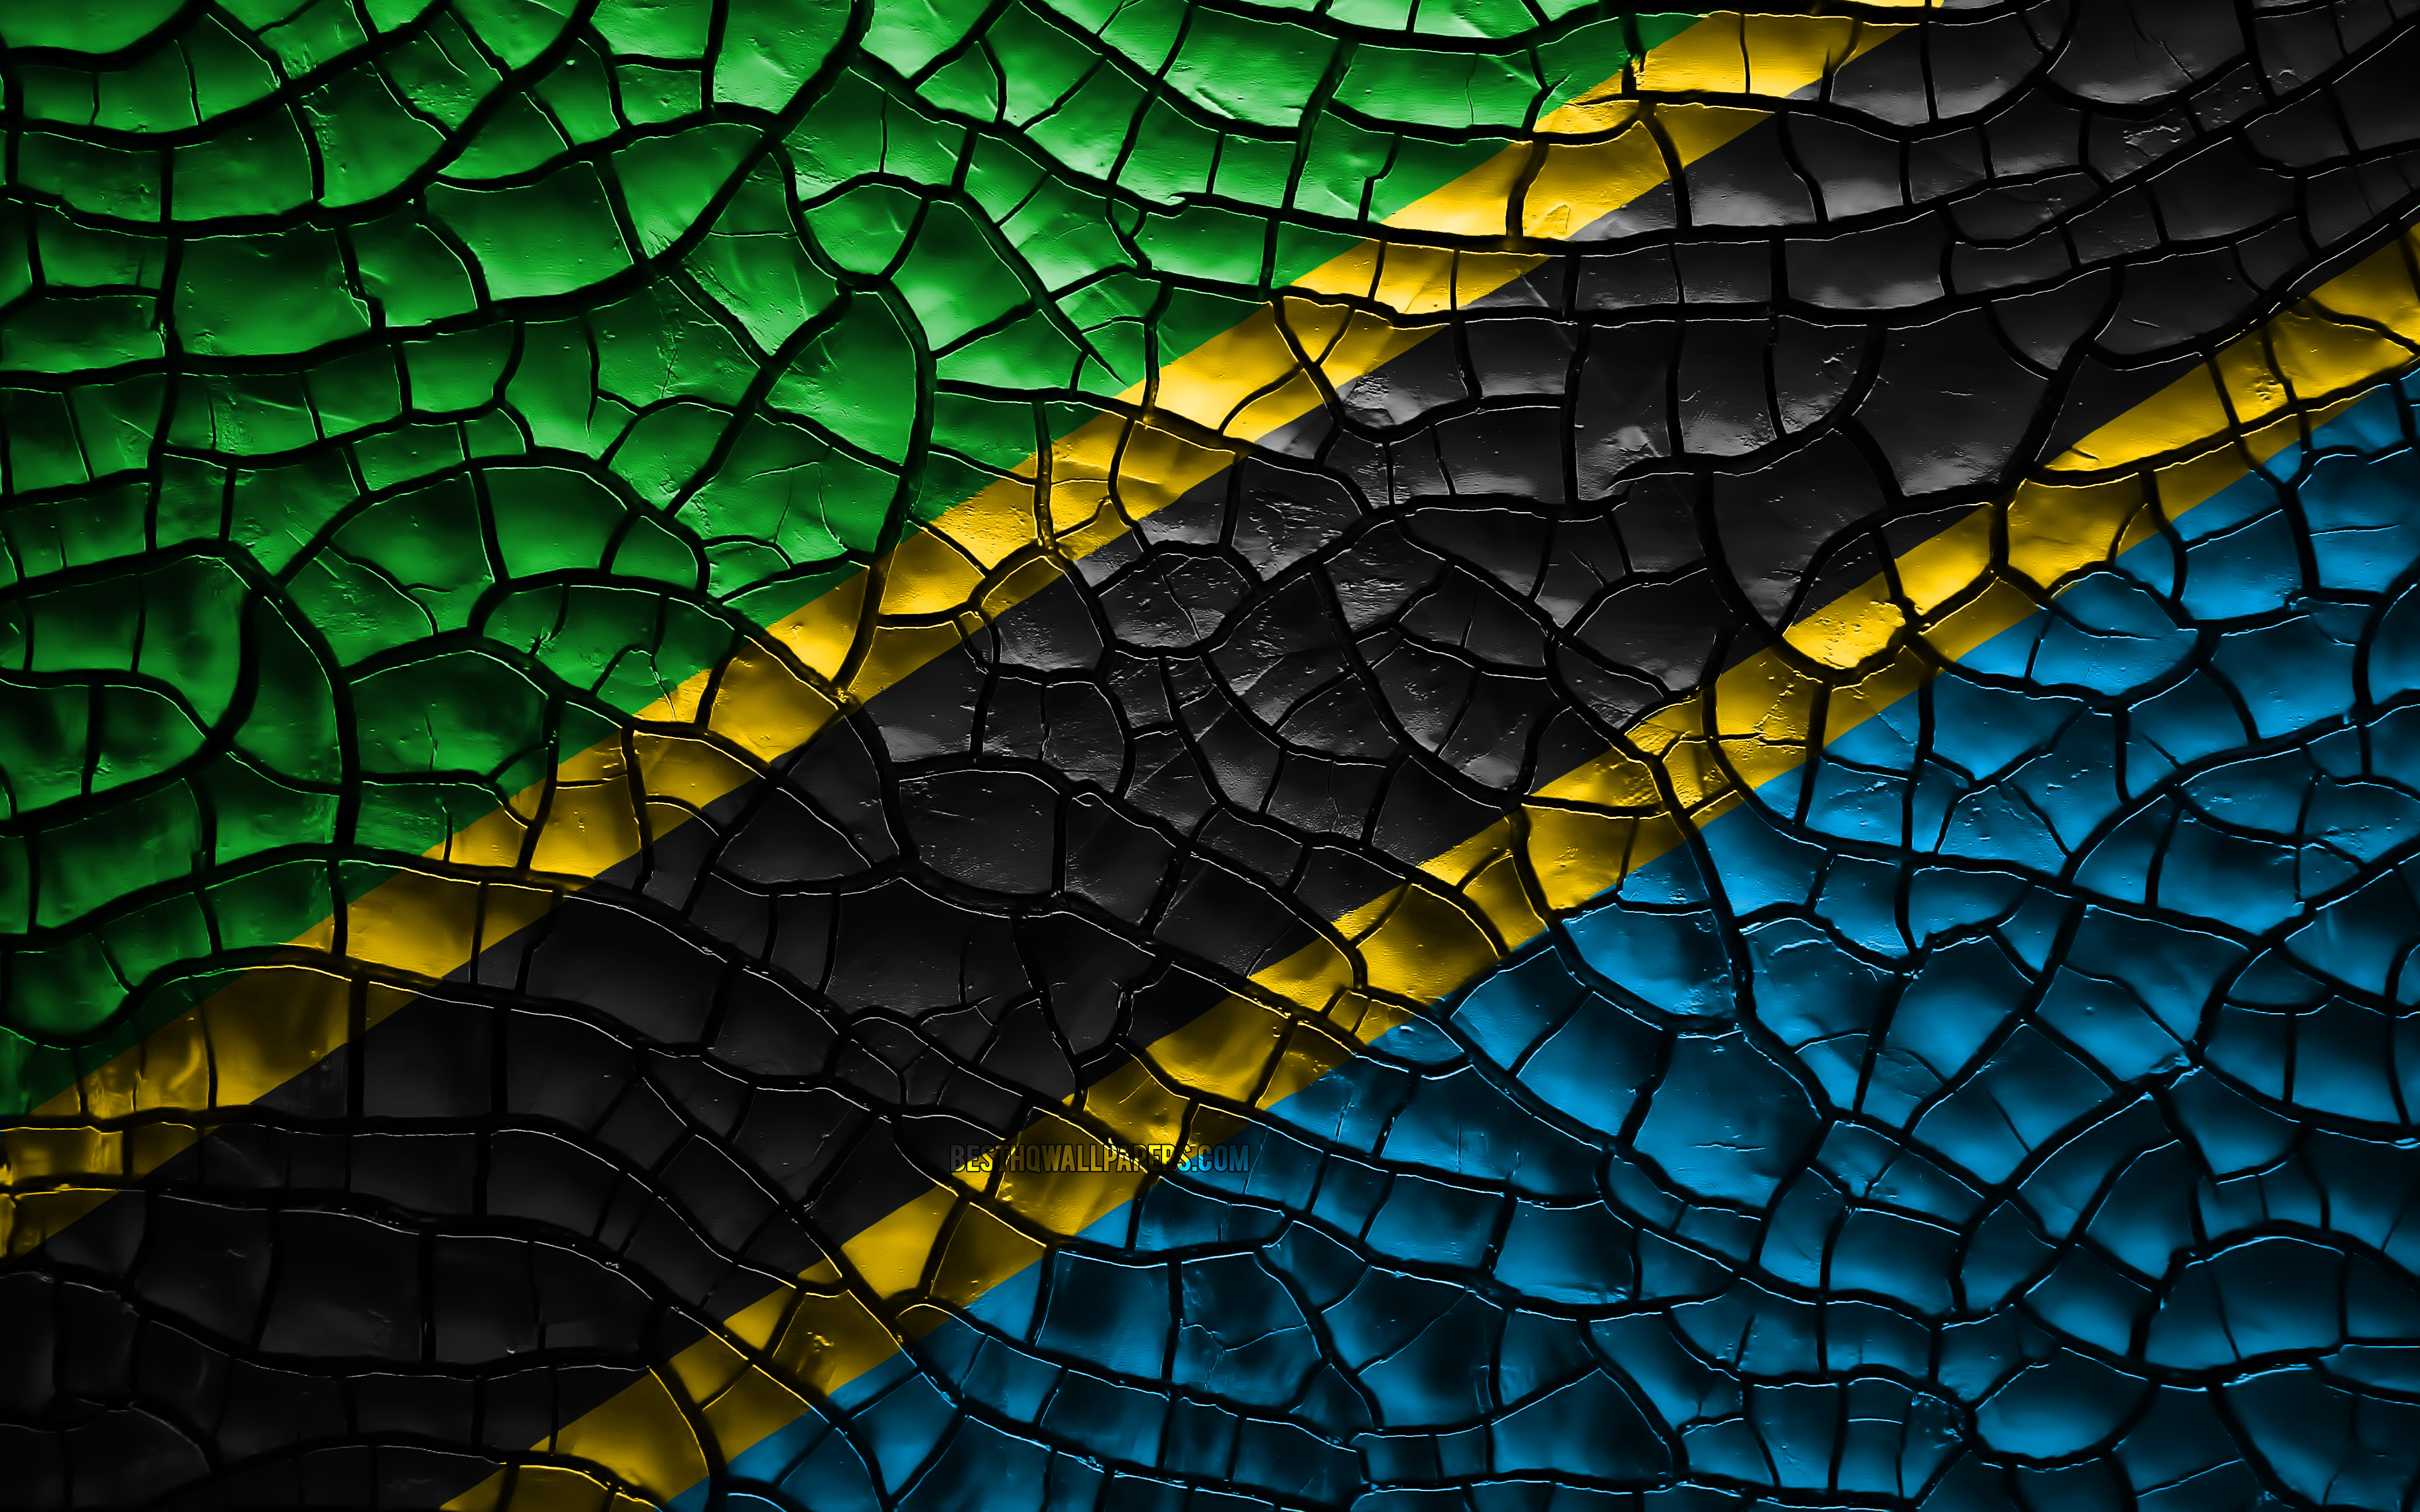 3840x2400 Download wallpapers Flag of Tanzania, 4k, cracked soil ...